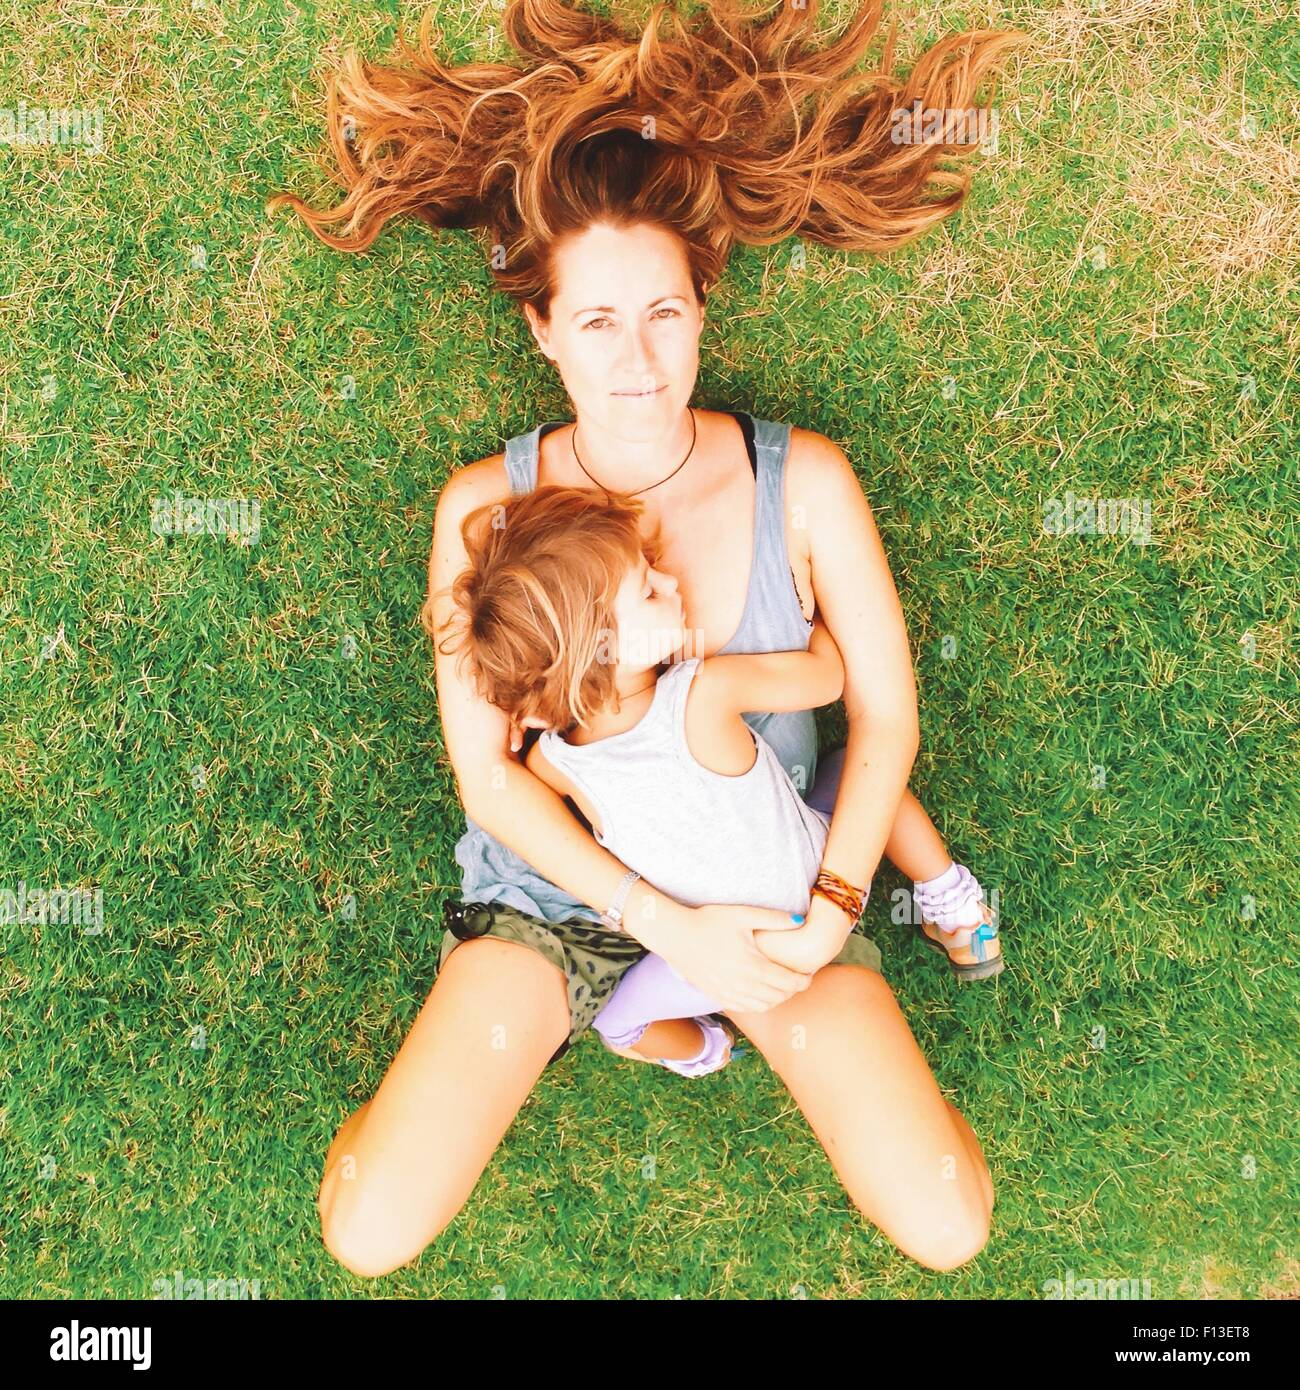 Overhead view of a woman lying on grass with her daughter Stock Photo